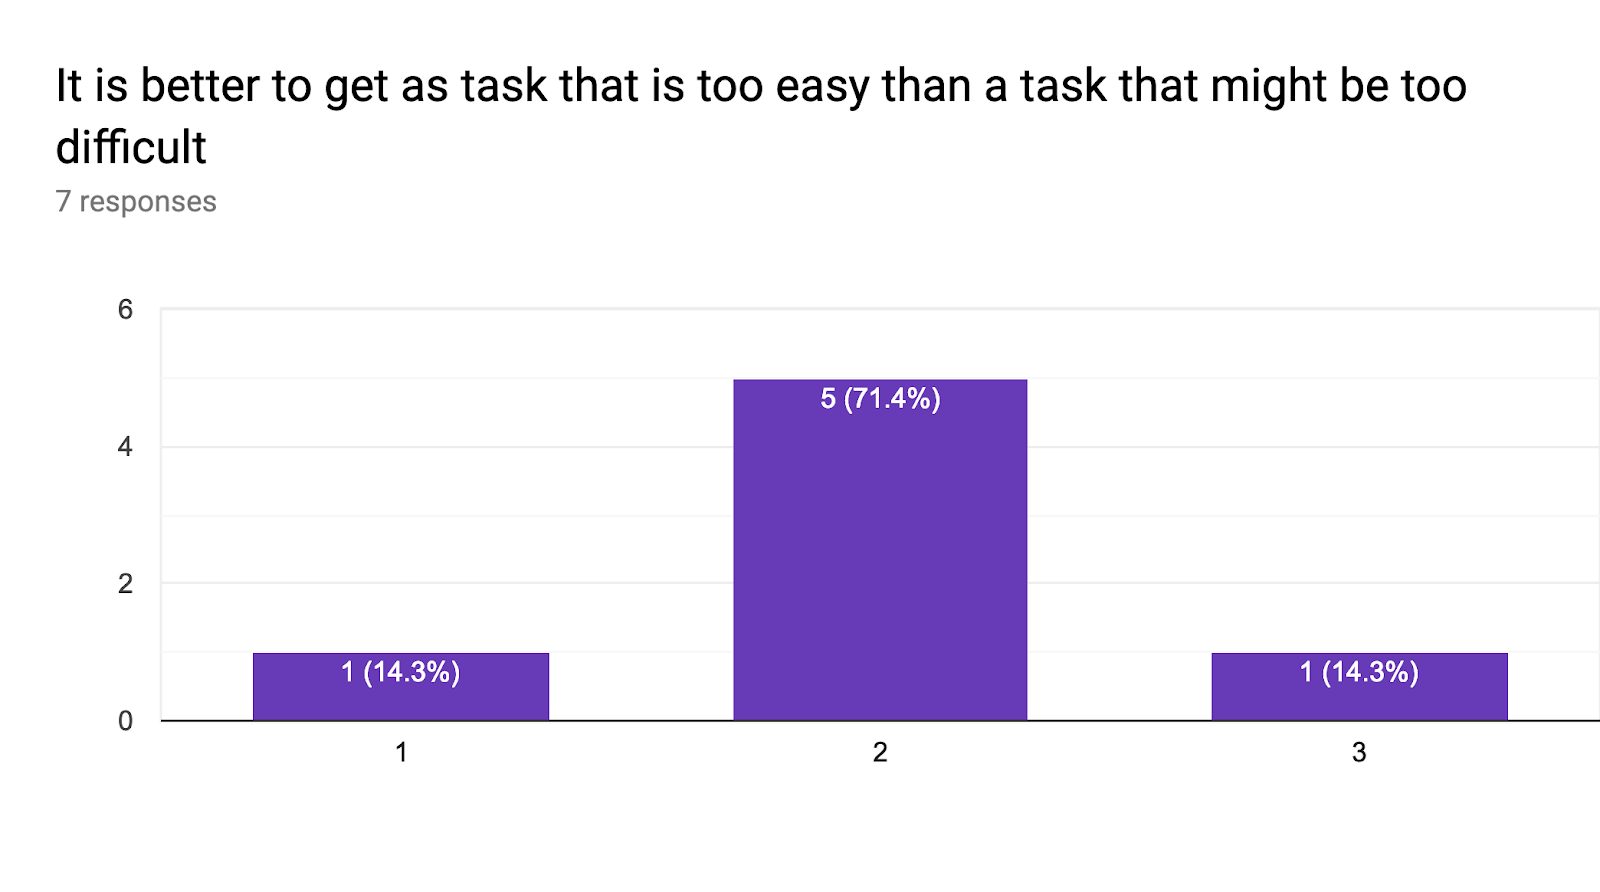 Forms response chart. Question title: It is better to get as task that is too easy than a task that might be too difficult. Number of responses: 7 responses.